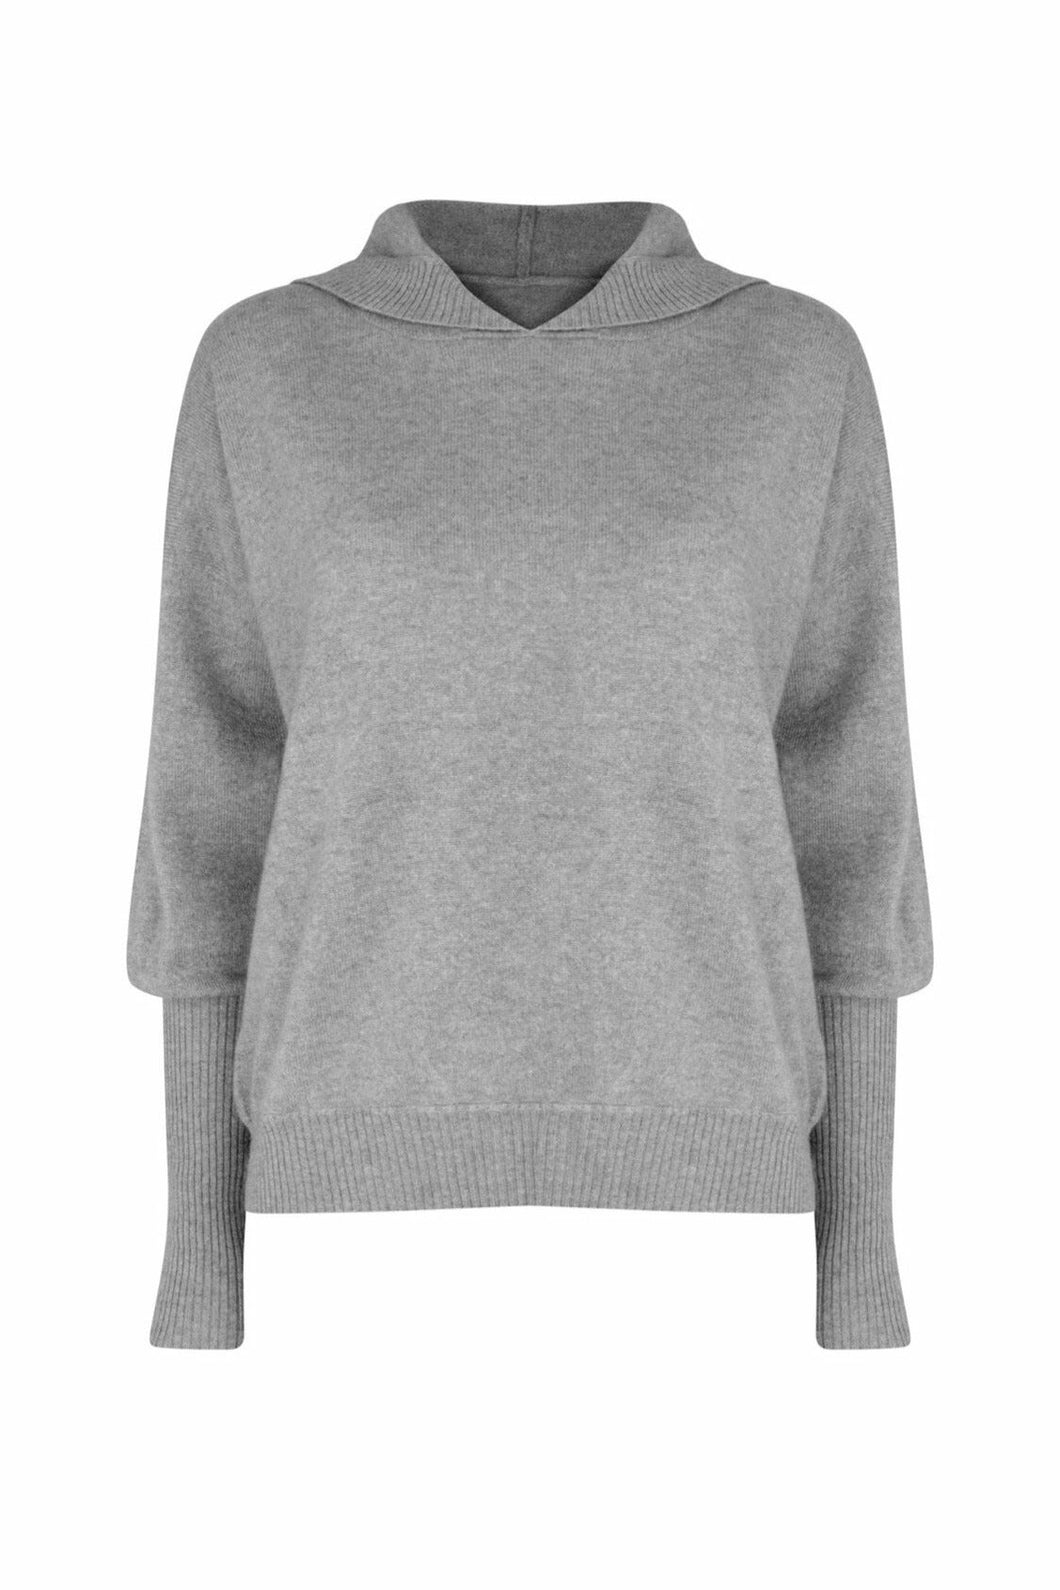 100% Cashmere Hoodie in London Grey